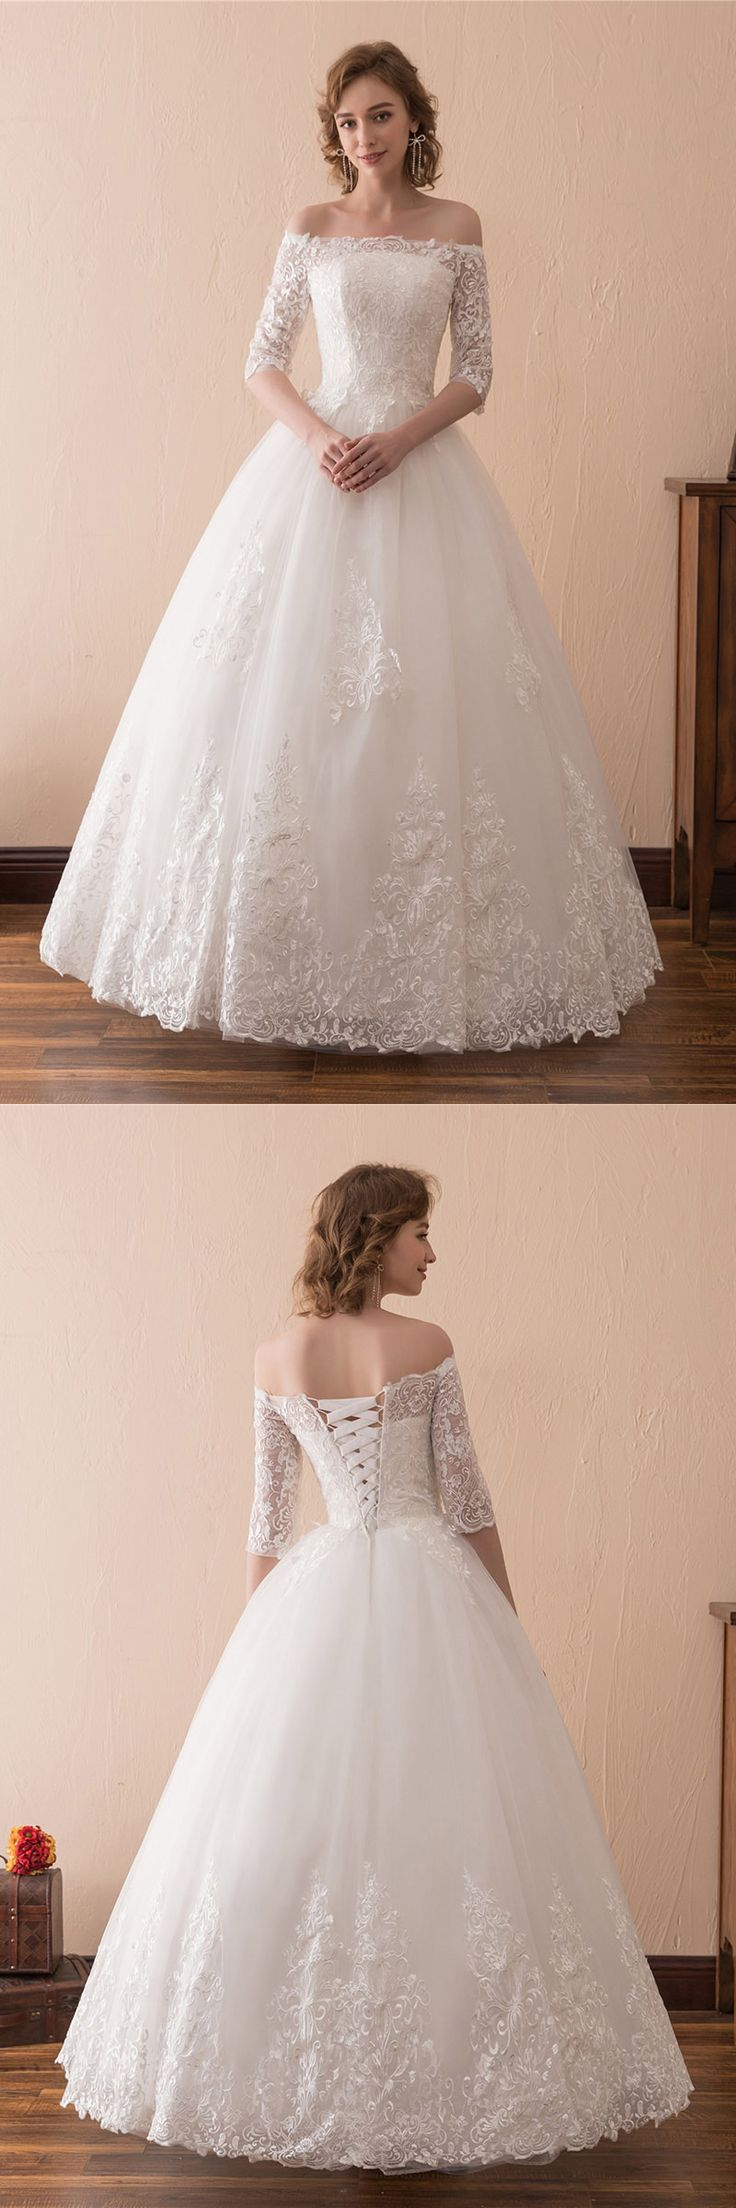 Cheap ballgown lace wedding dress with sleeves. Cheap under $150 with free shipping!